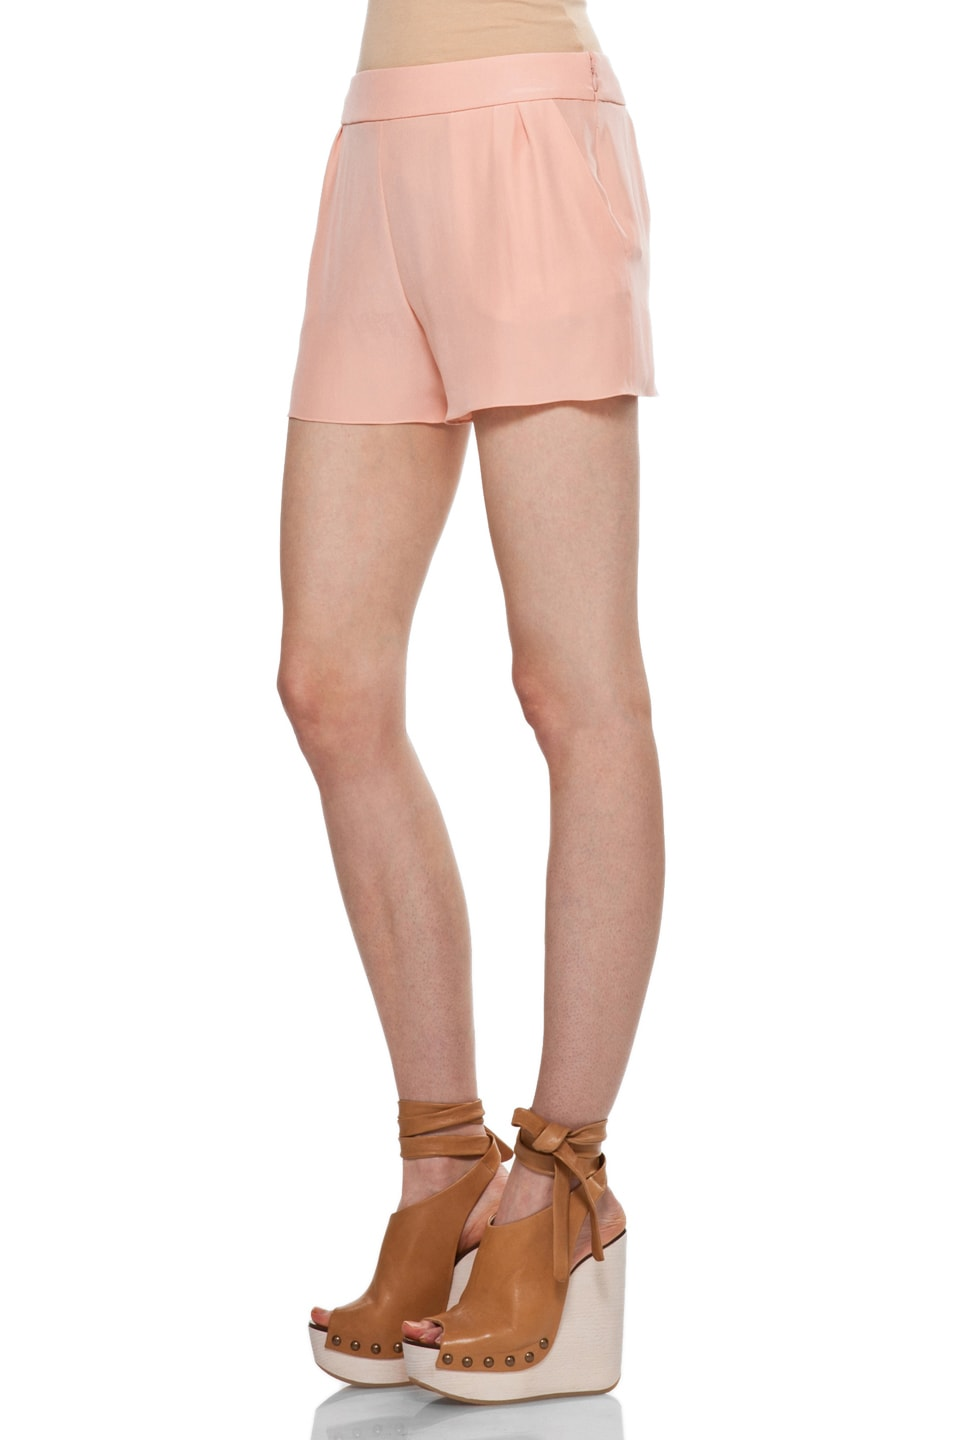 Image 2 of Chloe Silk Shorts in Peach